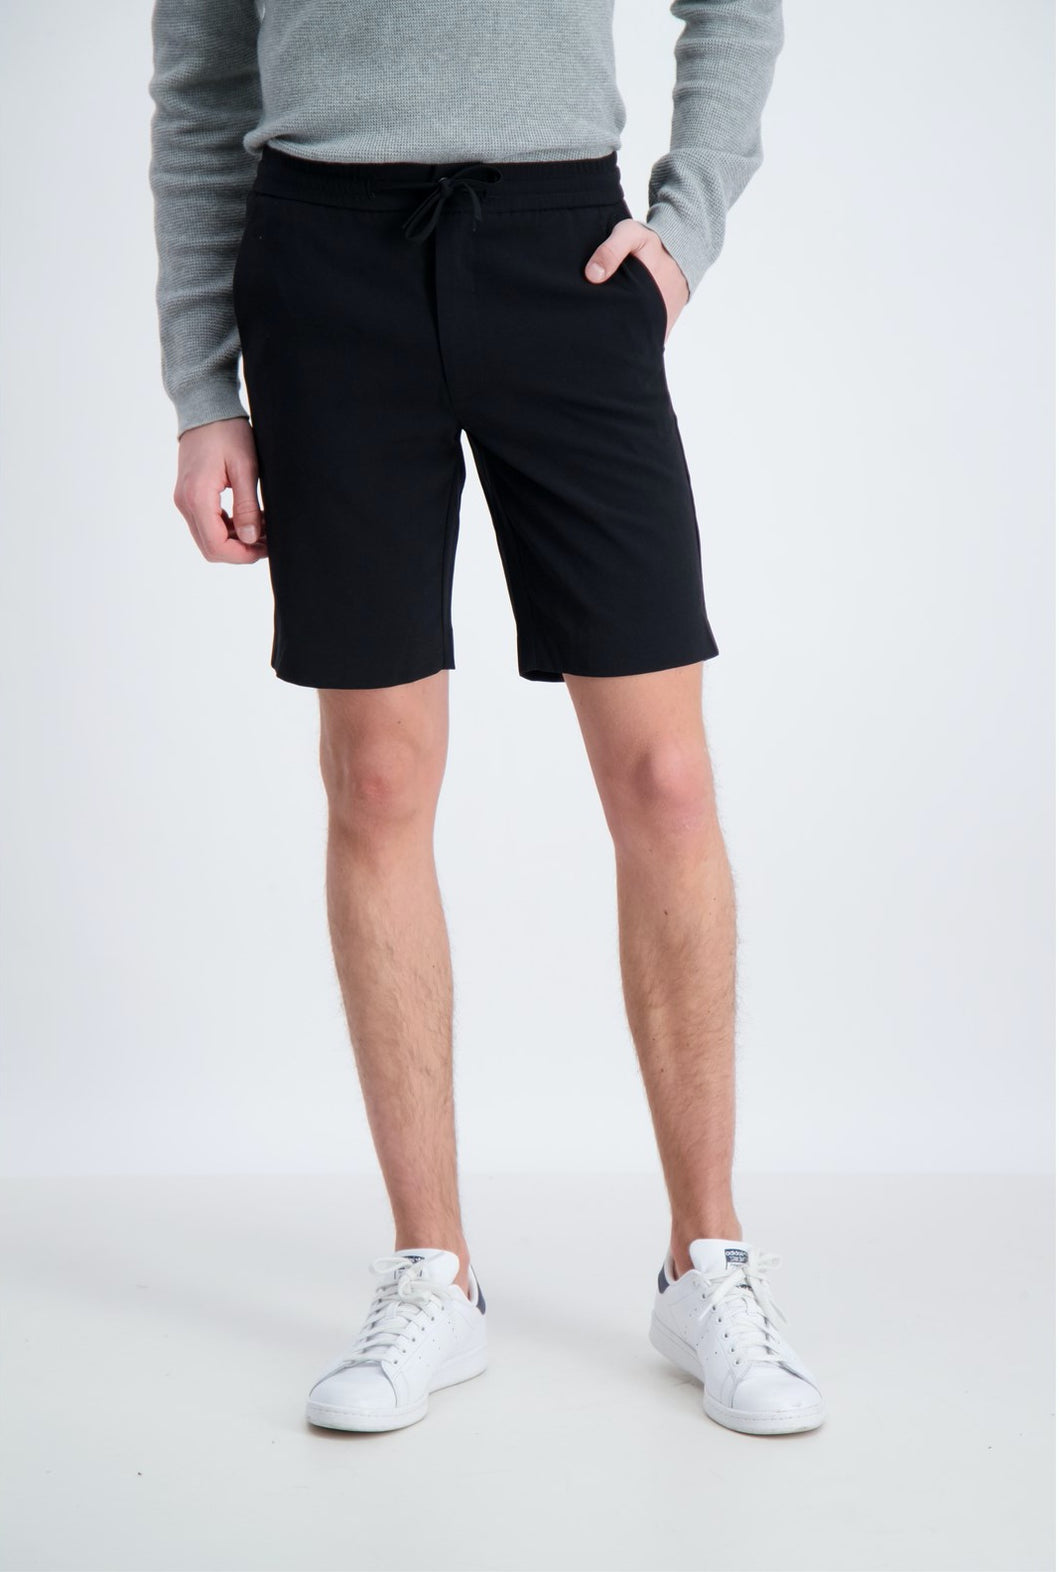 Relaxed Suit Shorts - Black / XS - SHORTS HERR, L,